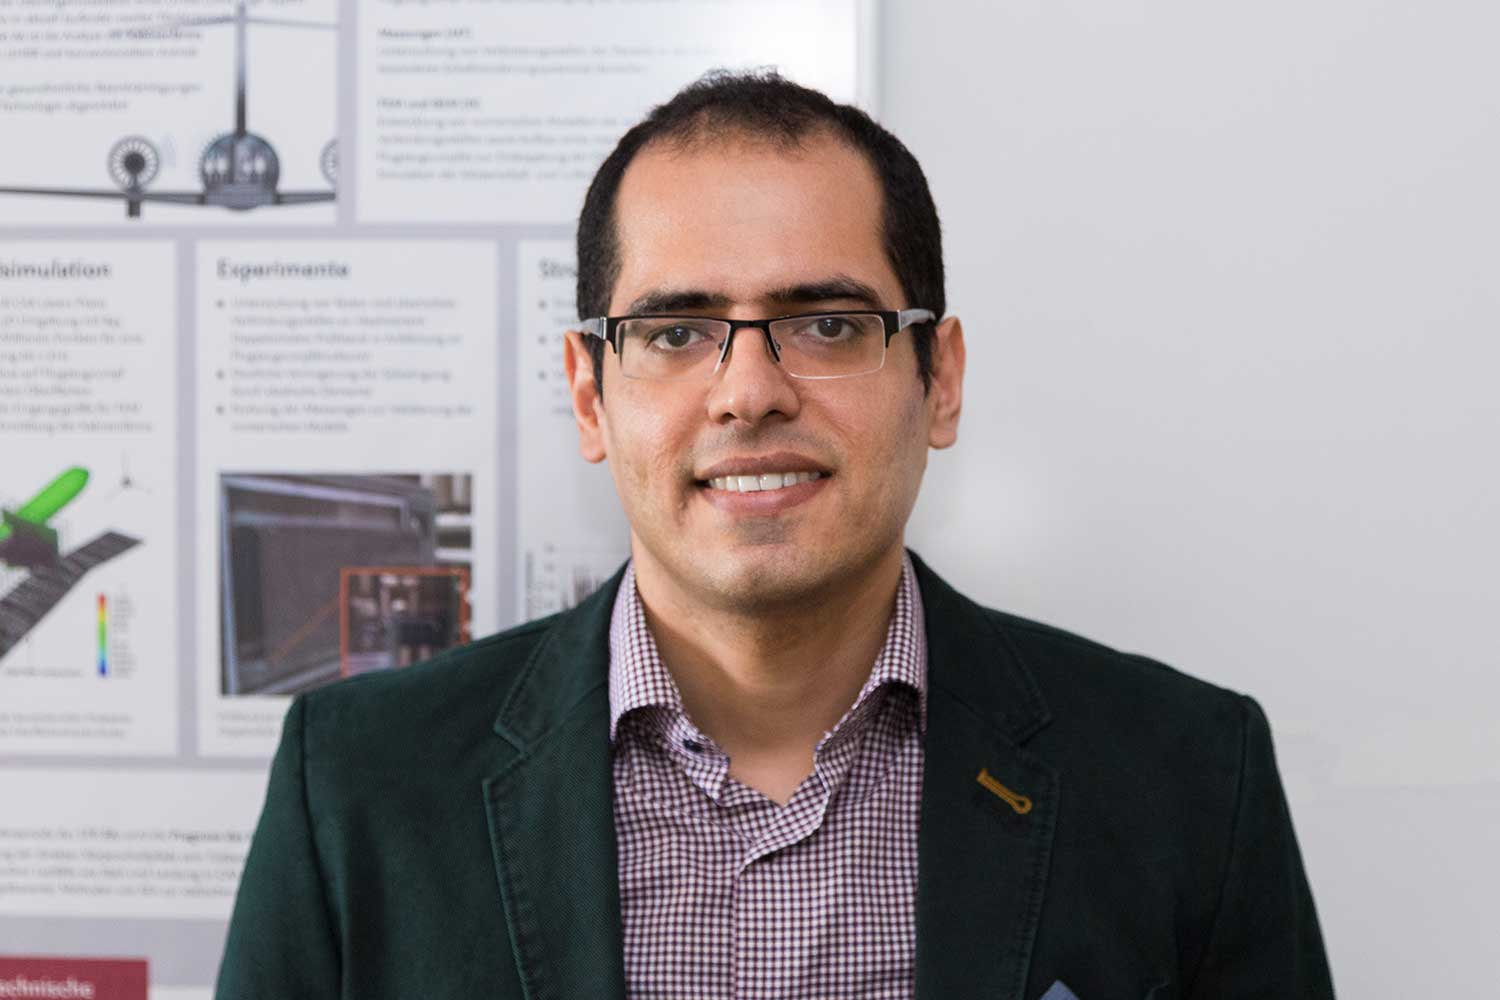 Dr. Ehsan Kian Far, research assistant at the Institute for Engineering Design of the TU Braunschweig. Credit: Jonas Vogel/TU Braunschweig